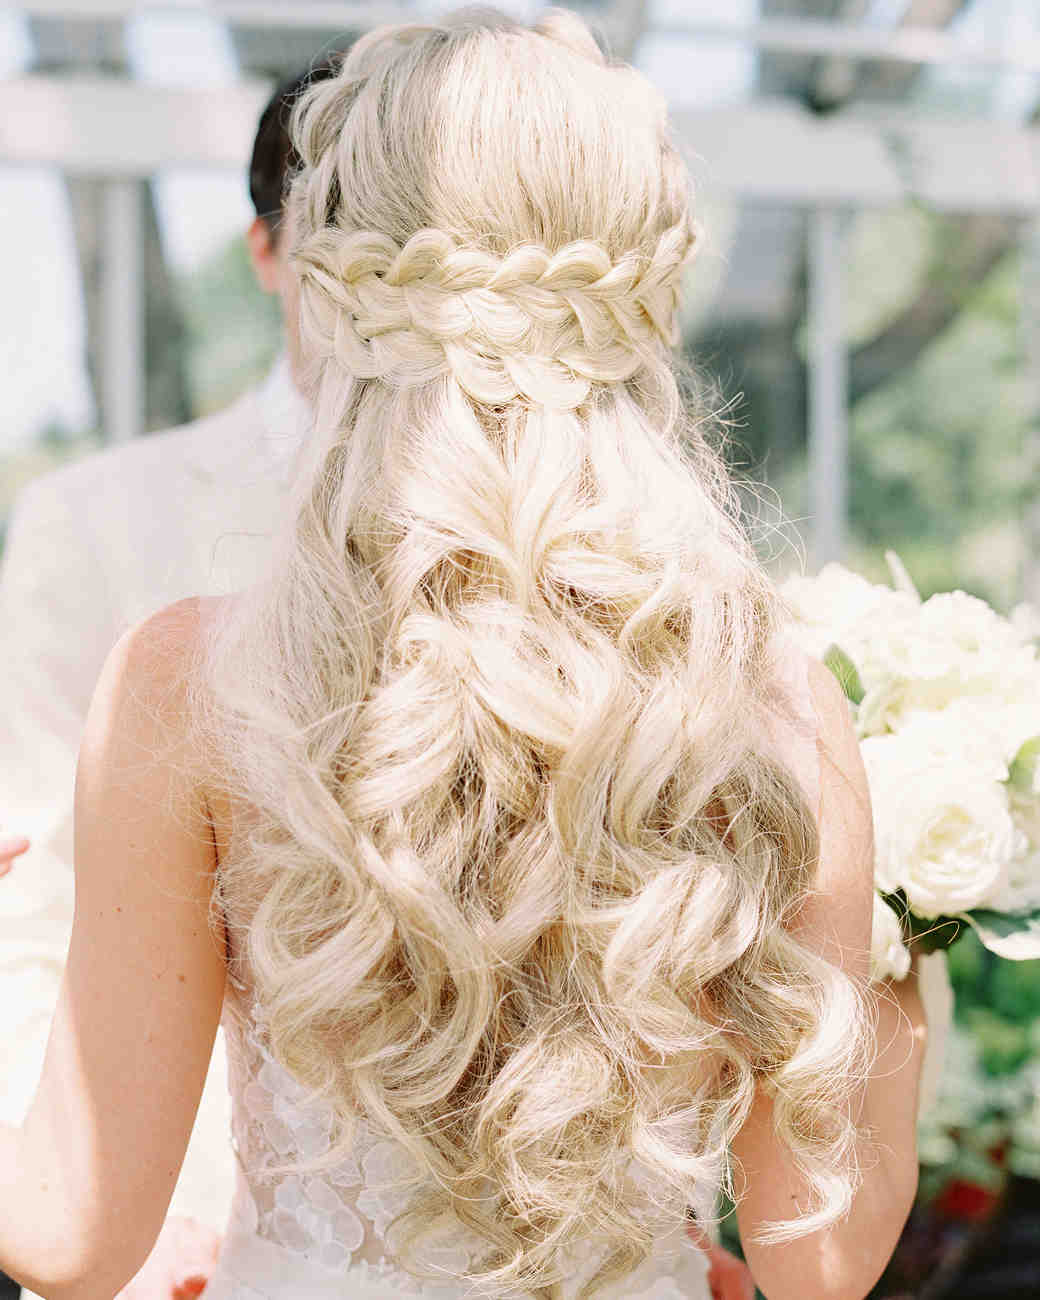 Hairstyles For Girls For Wedding: 28 Half-Up, Half-Down Wedding Hairstyles We Love